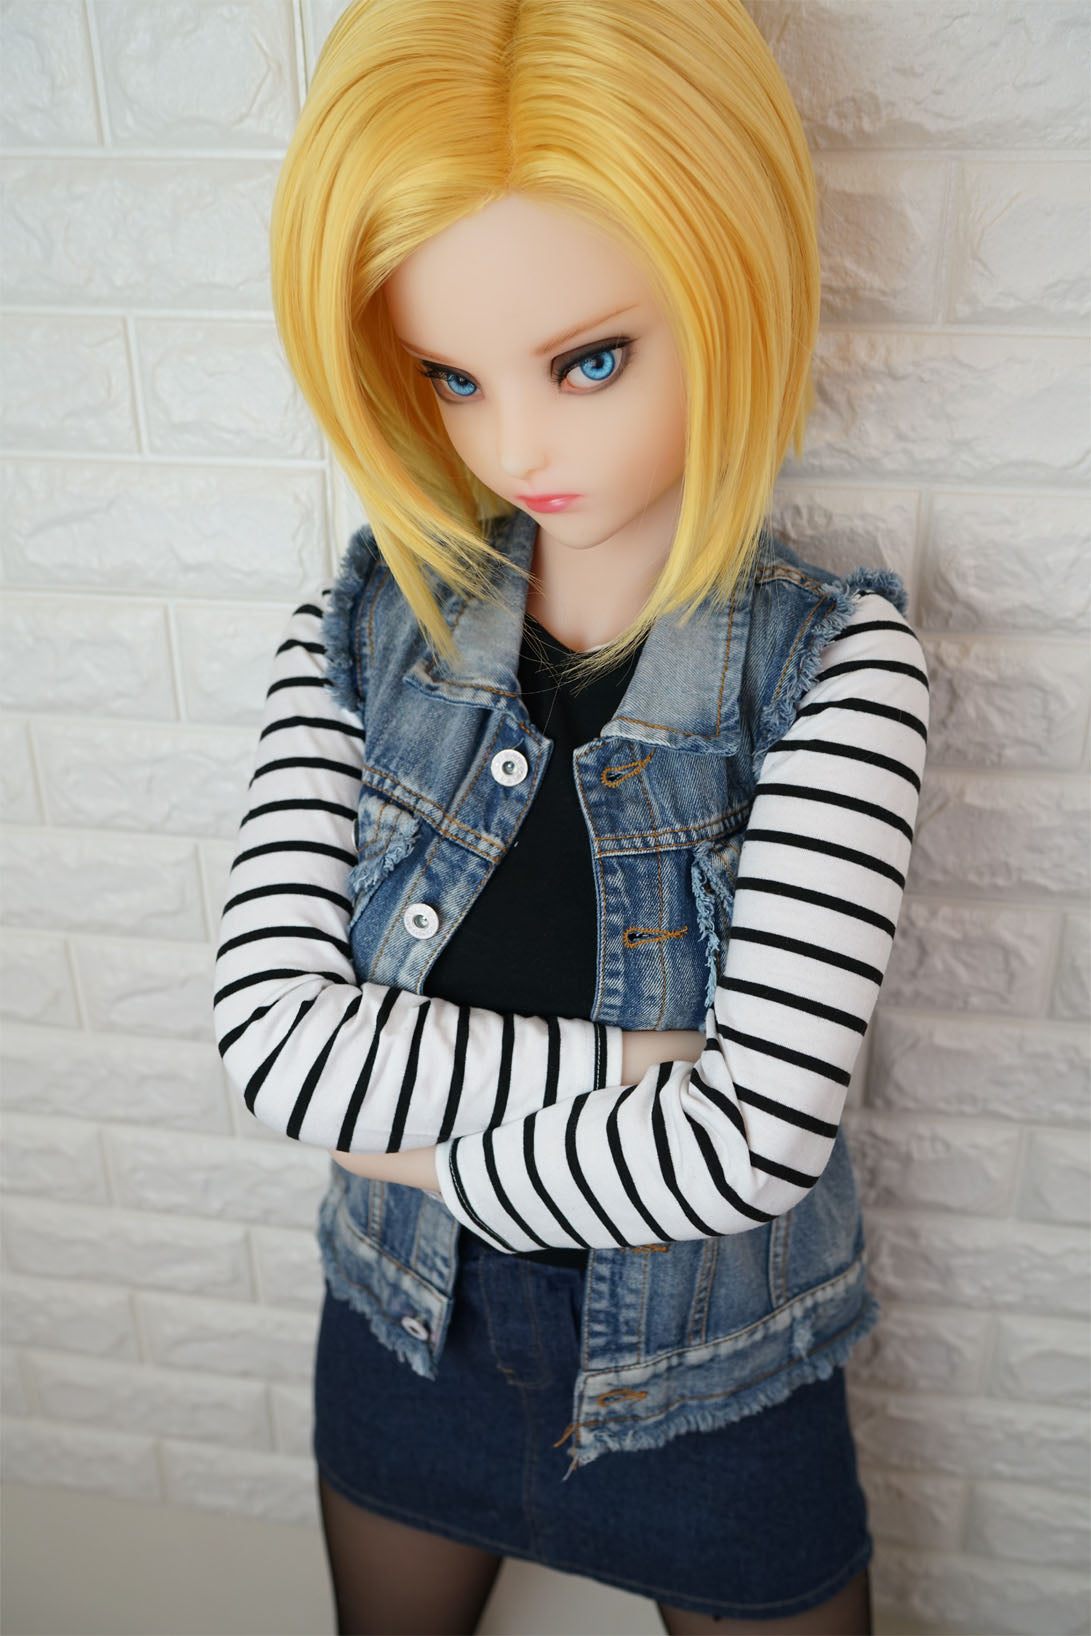 DH168 145cm Sex Doll - Lazuli / Android 18